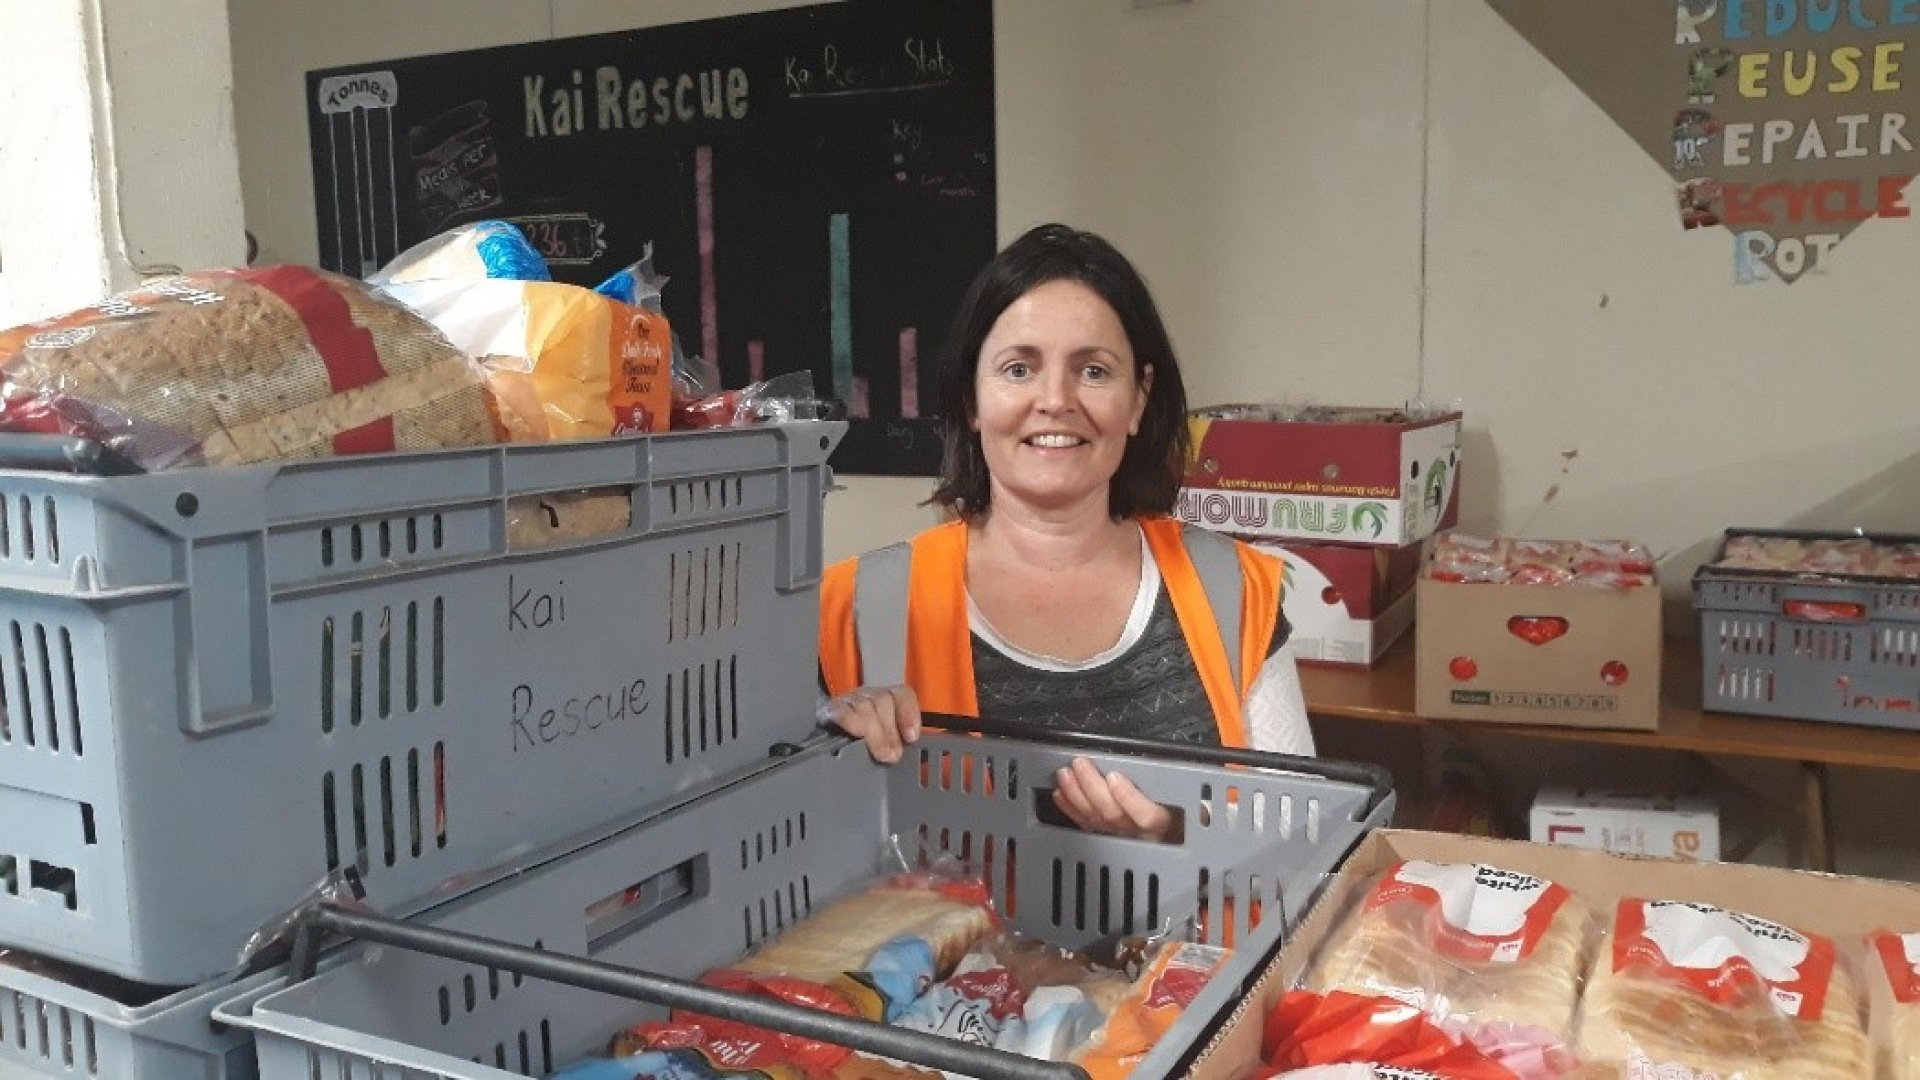 Kai Rescue is reducing food waste and helping to feed those most in need.